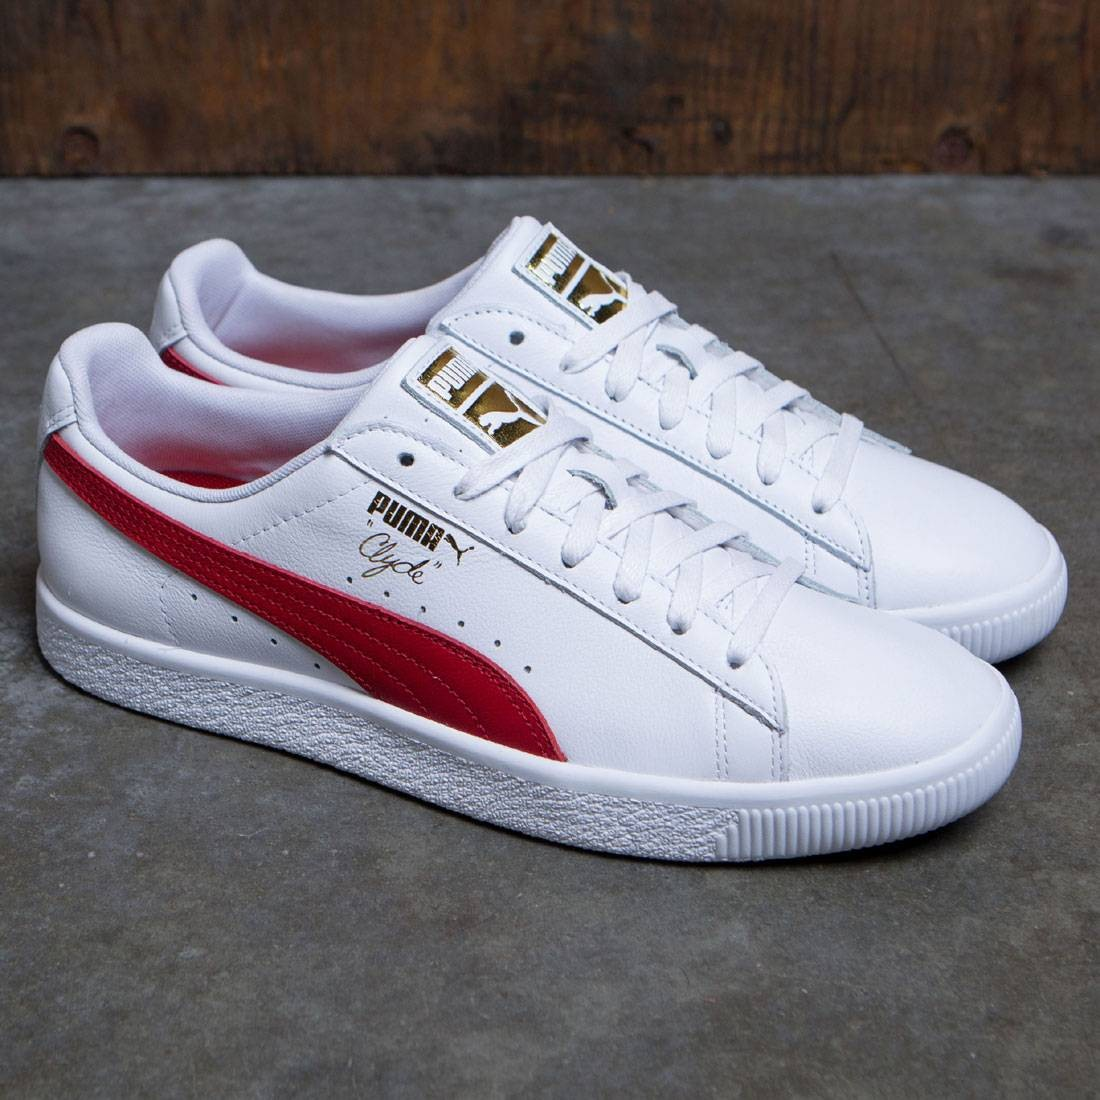 buy online 4b04a 735d4 Puma Men Clyde Core - Leather Foil (white / red)